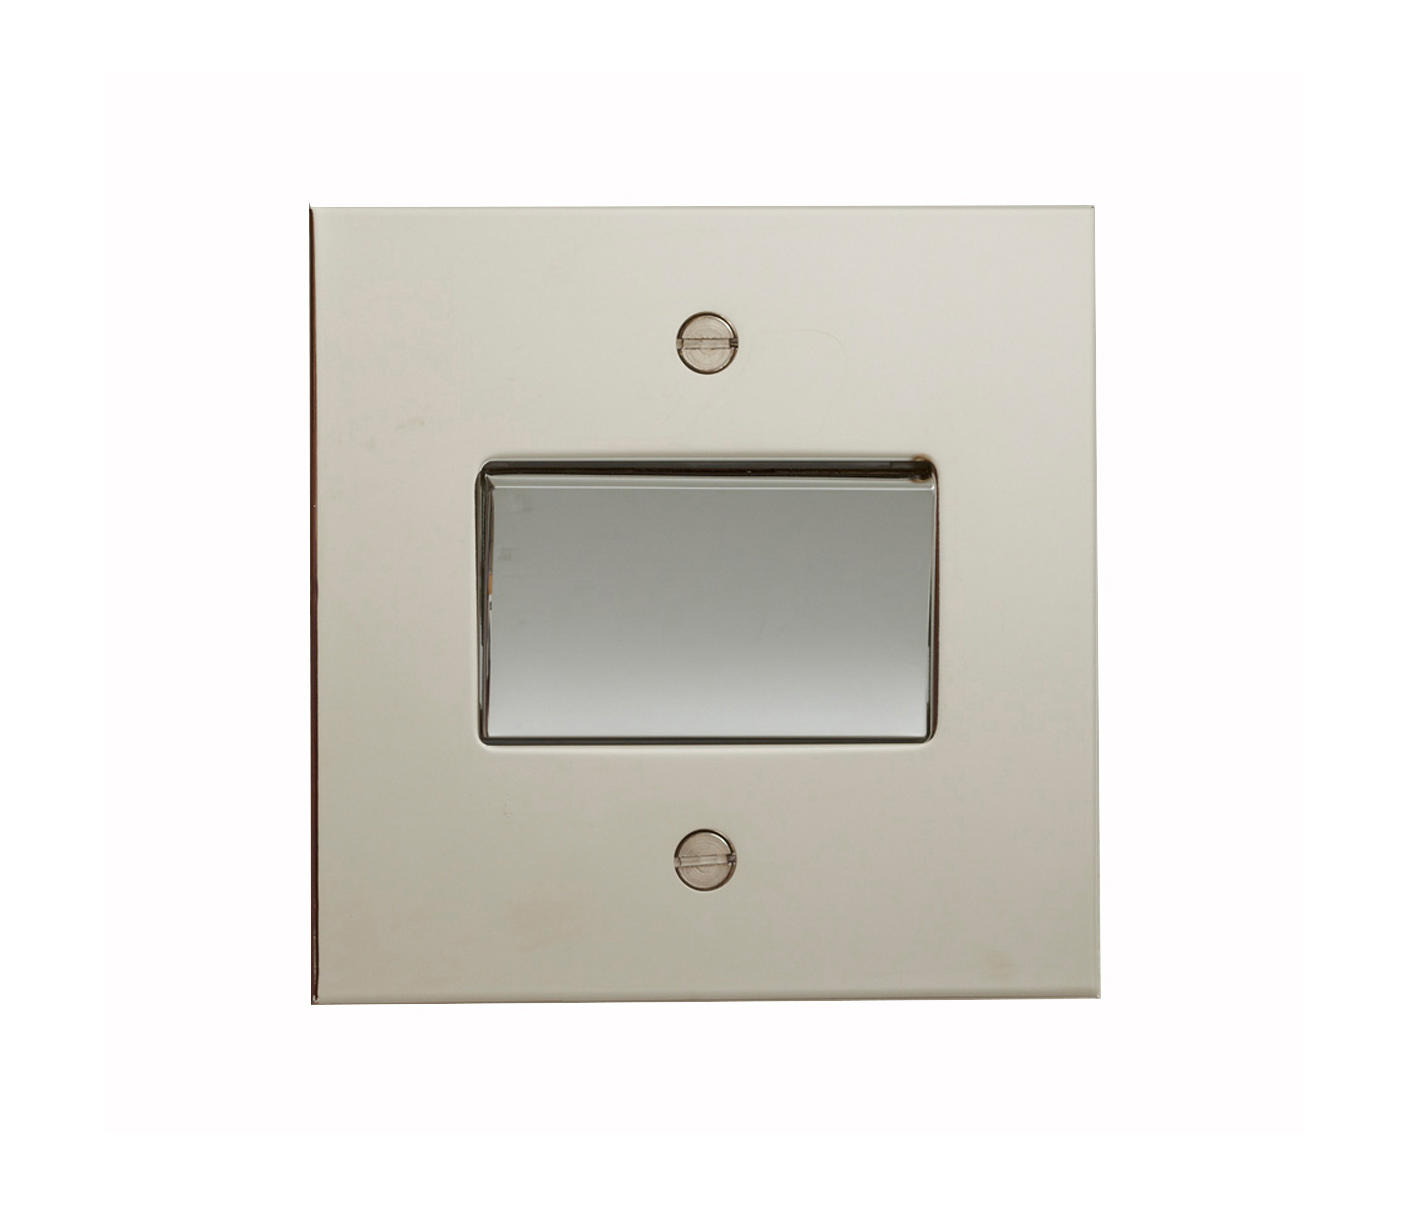 NICKEL SILVER FAN SWITCH - Two-way switches from Forbes & Lomax ...